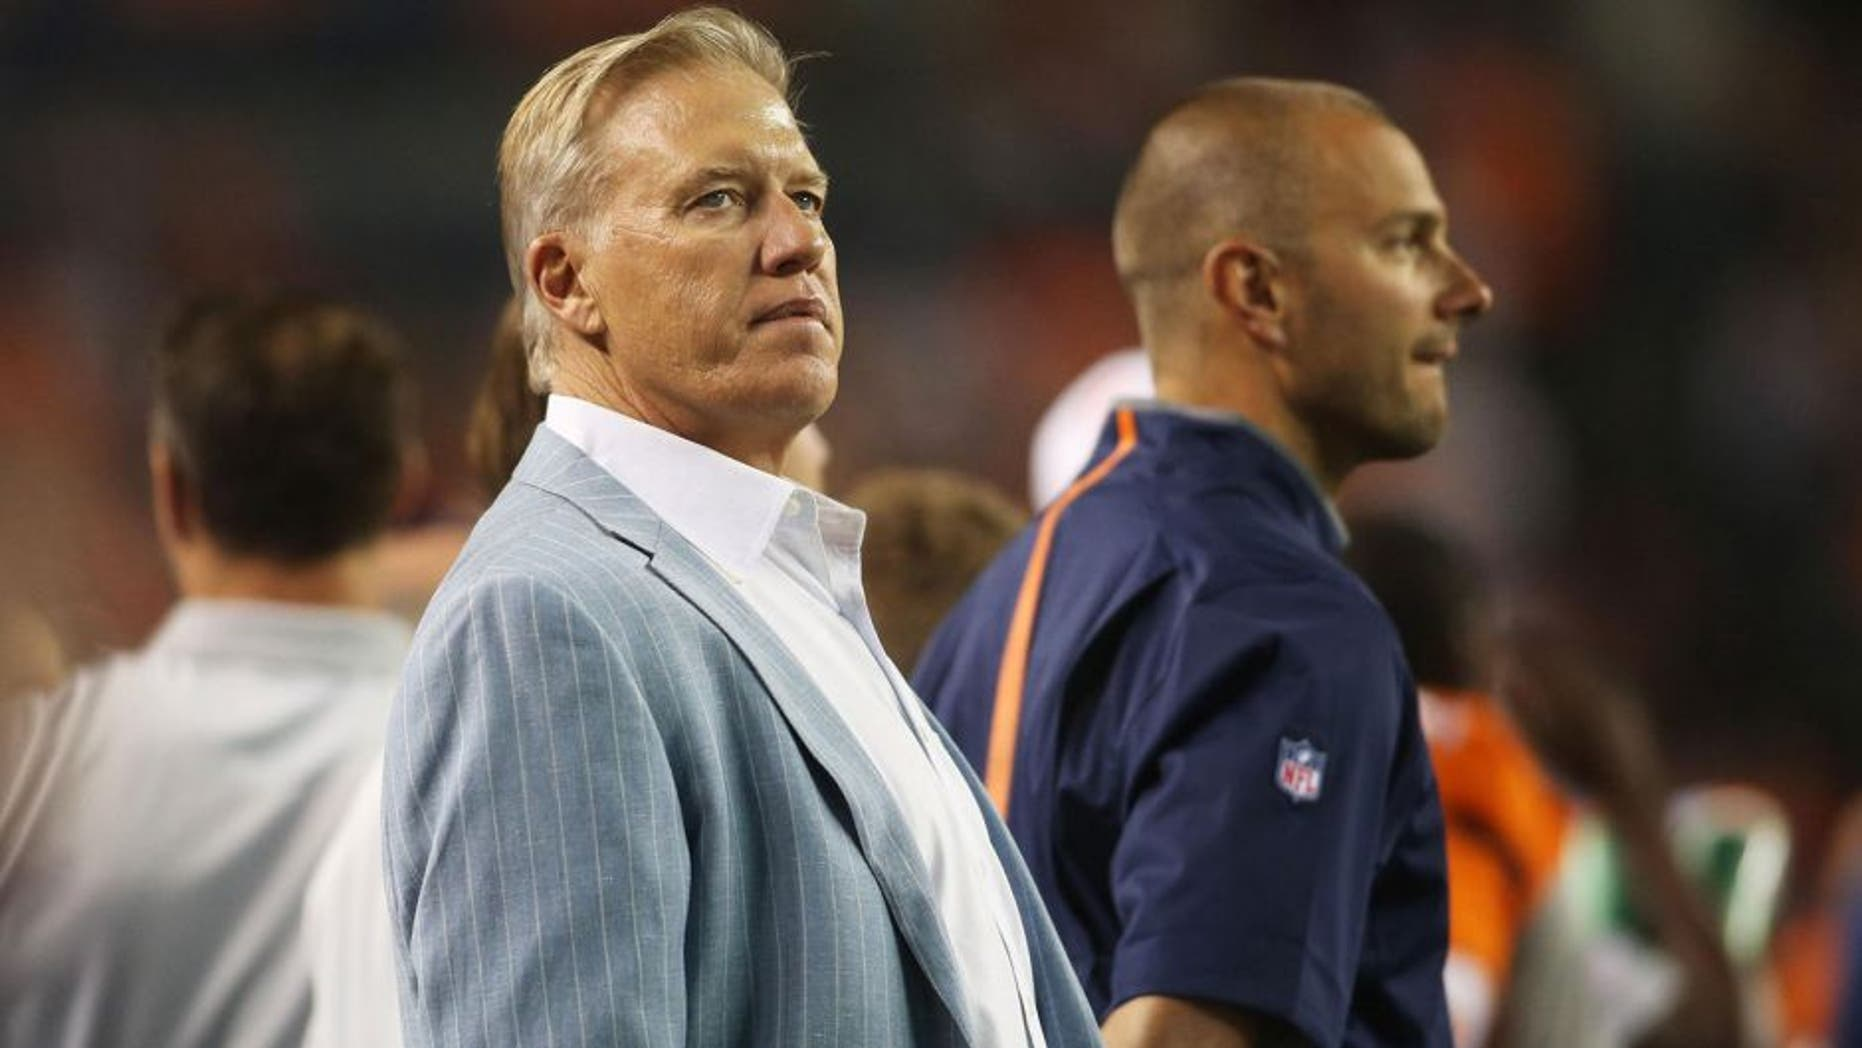 Aug 29, 2015; Denver, CO, USA; Denver Broncos general manager John Elway during the second half against the San Francisco 49ers at Sports Authority Field at Mile High. The Broncos won 19-12. Mandatory Credit: Chris Humphreys-USA TODAY Sports